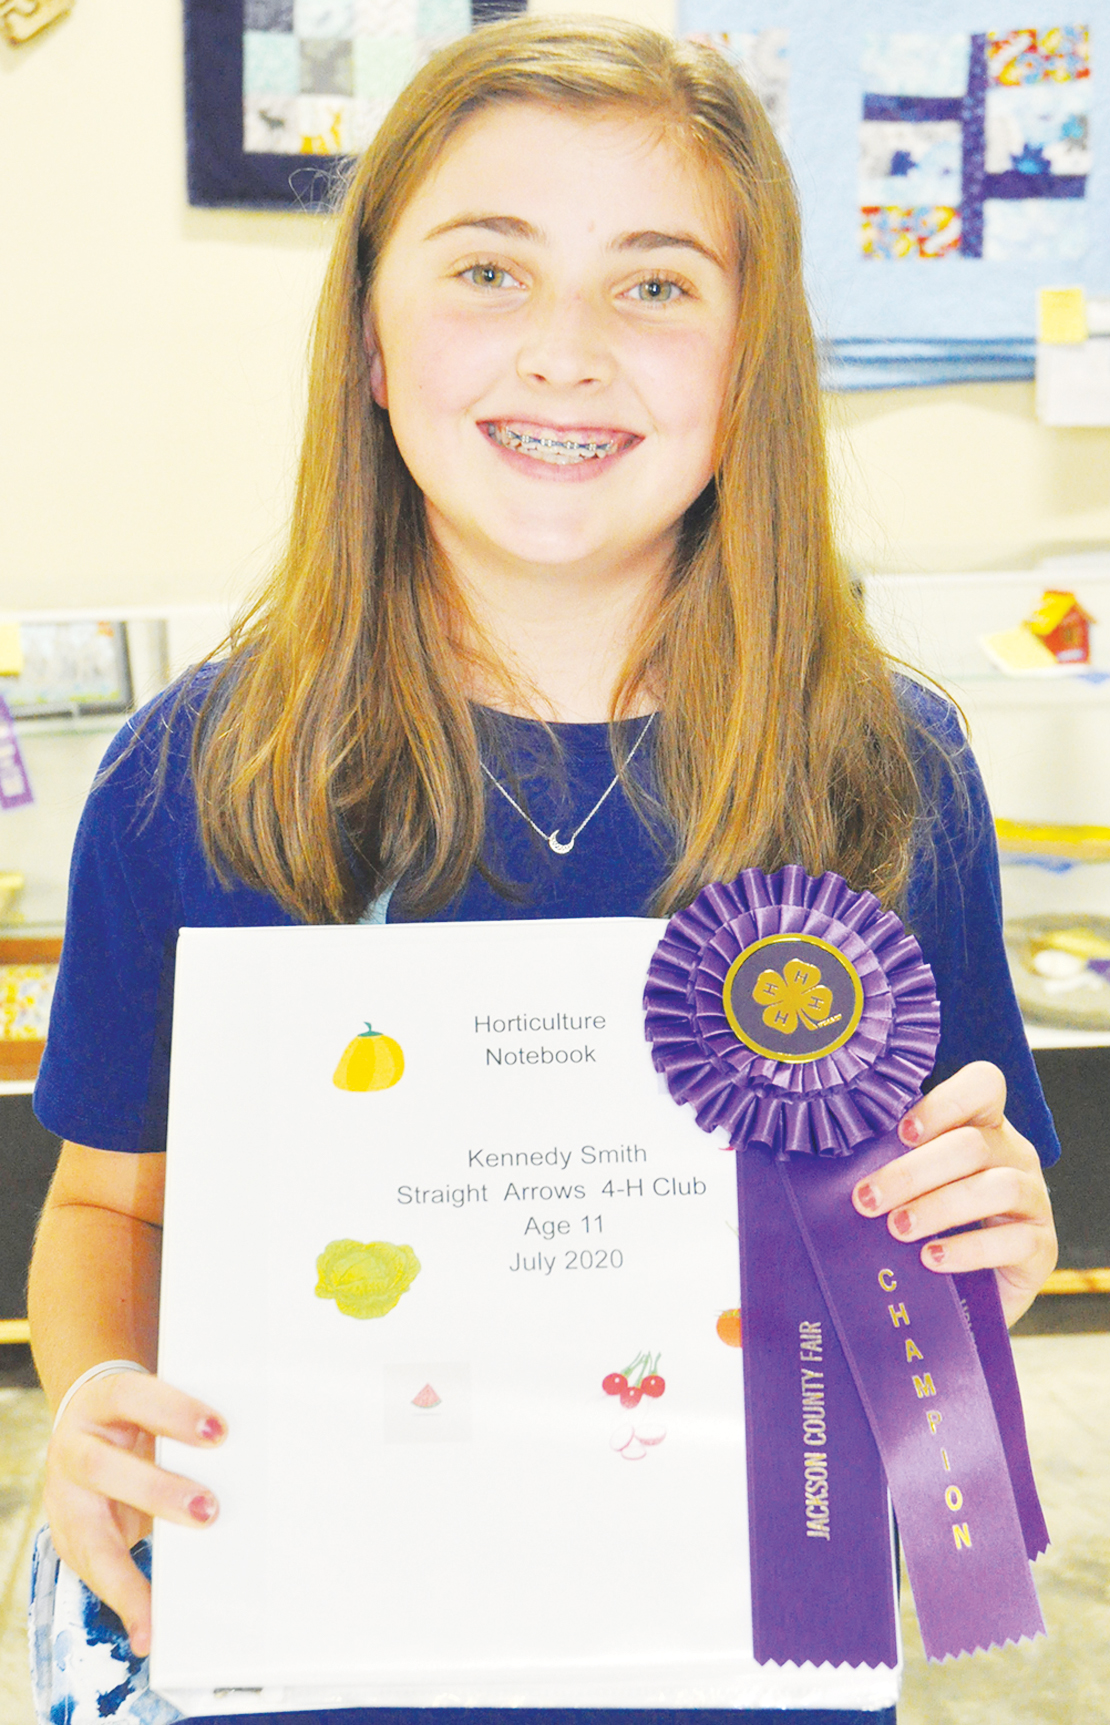 Kennedy Smith - Horticulture Notebook